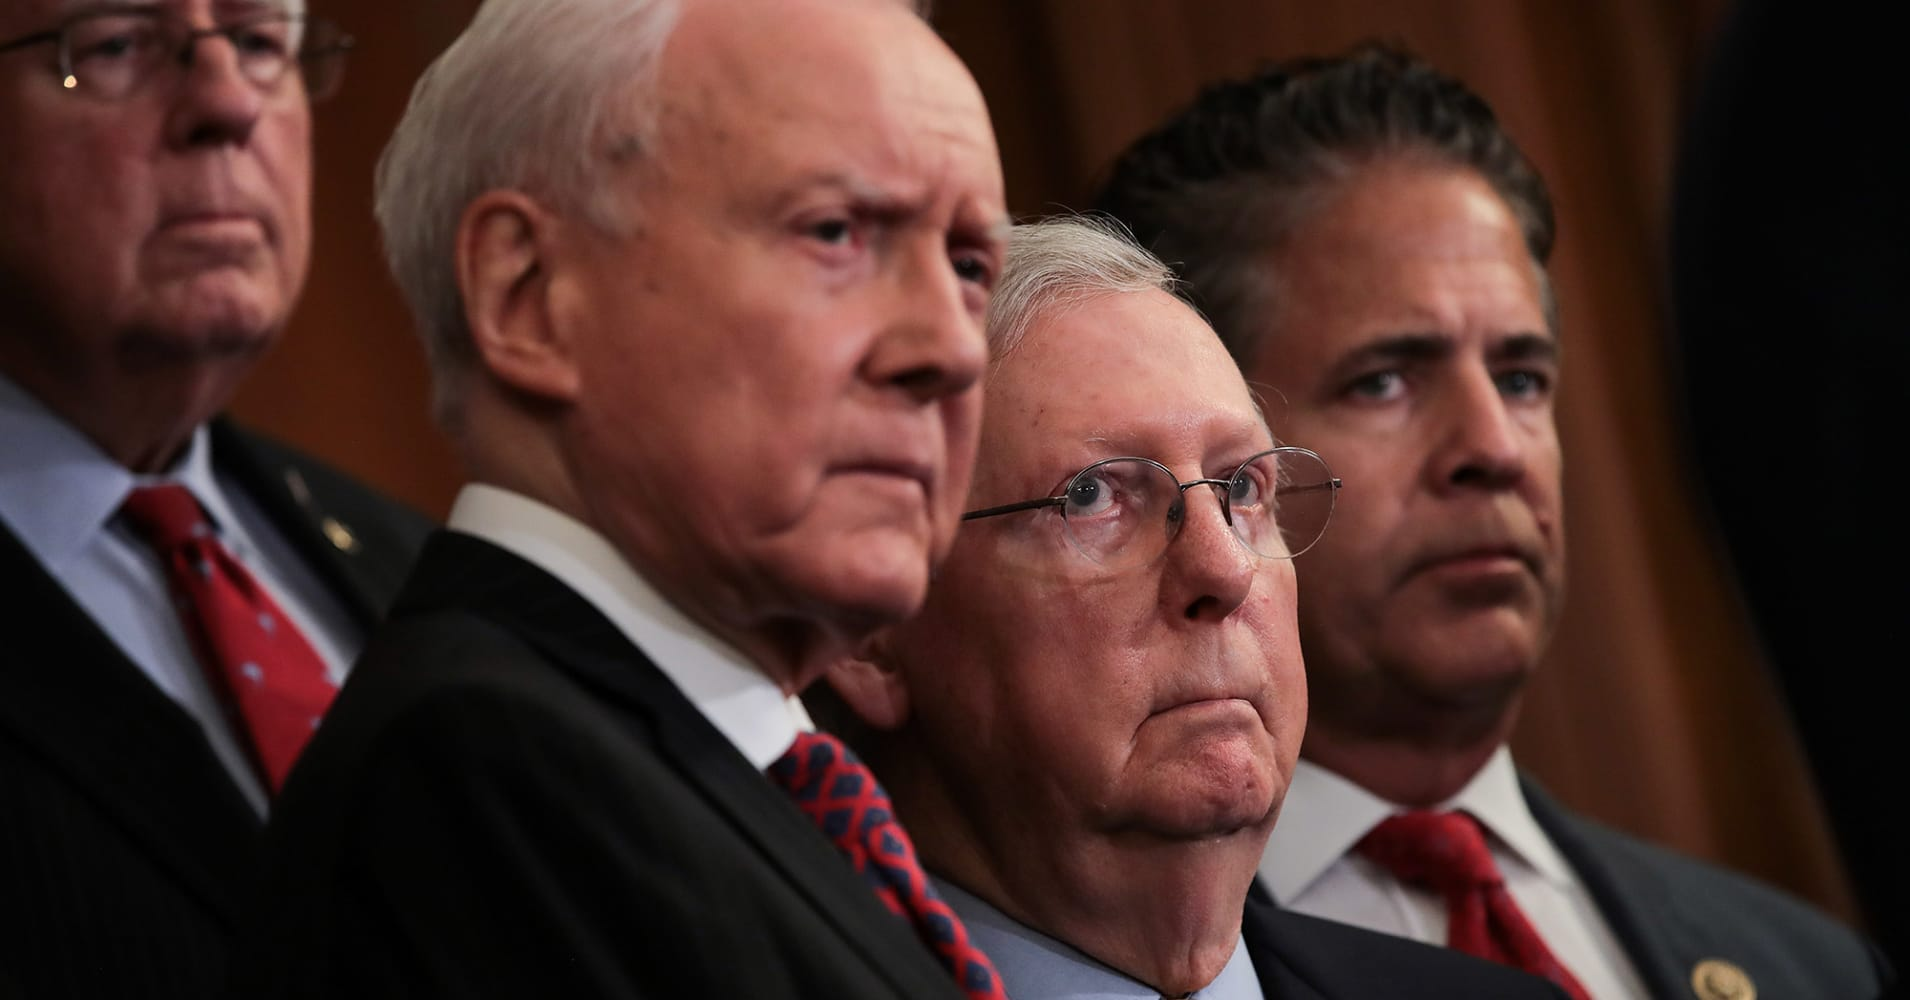 GOP tax bill would spike Obamacare premiums nearly $2,000 for families, trigger Medicare cuts